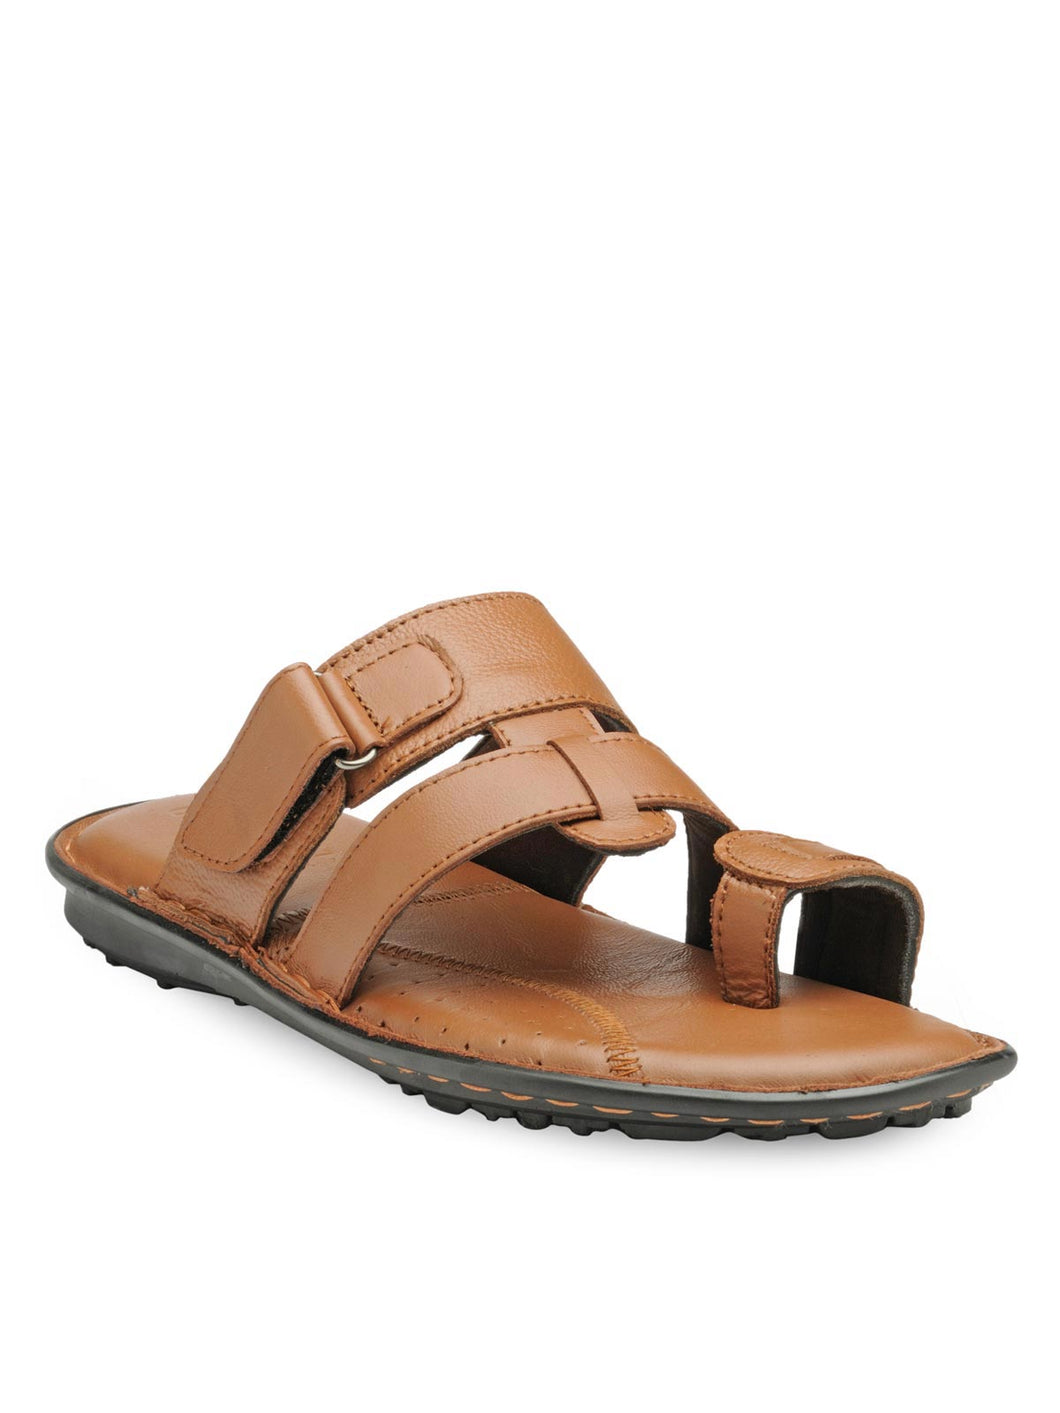 Teakwood Men's Leather Outdoor Slippers & Sandals Footwear